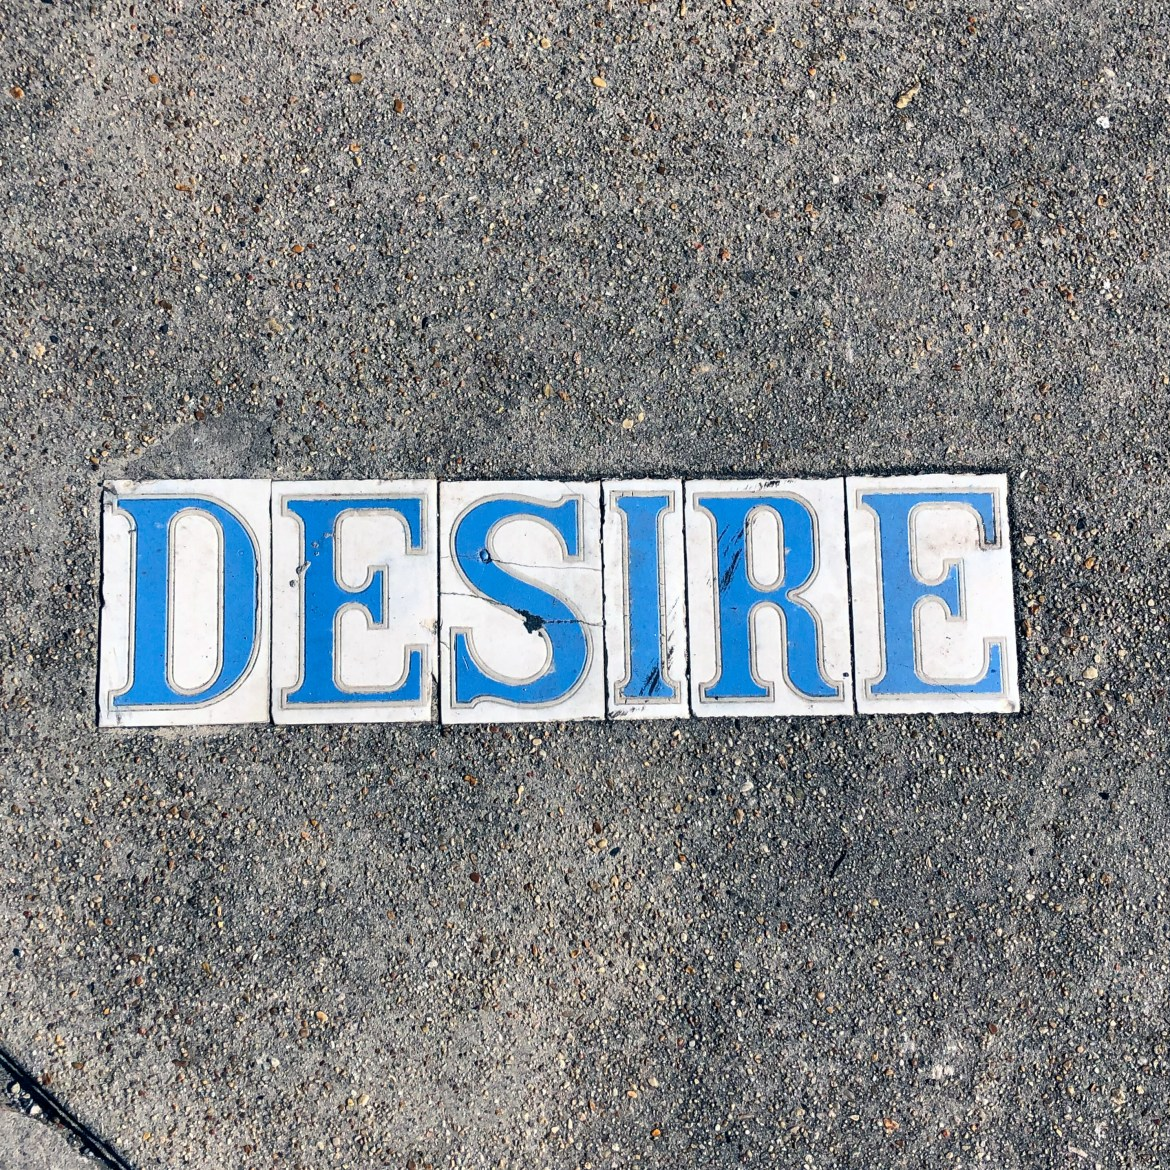 #desirestreet #nola #derbytile